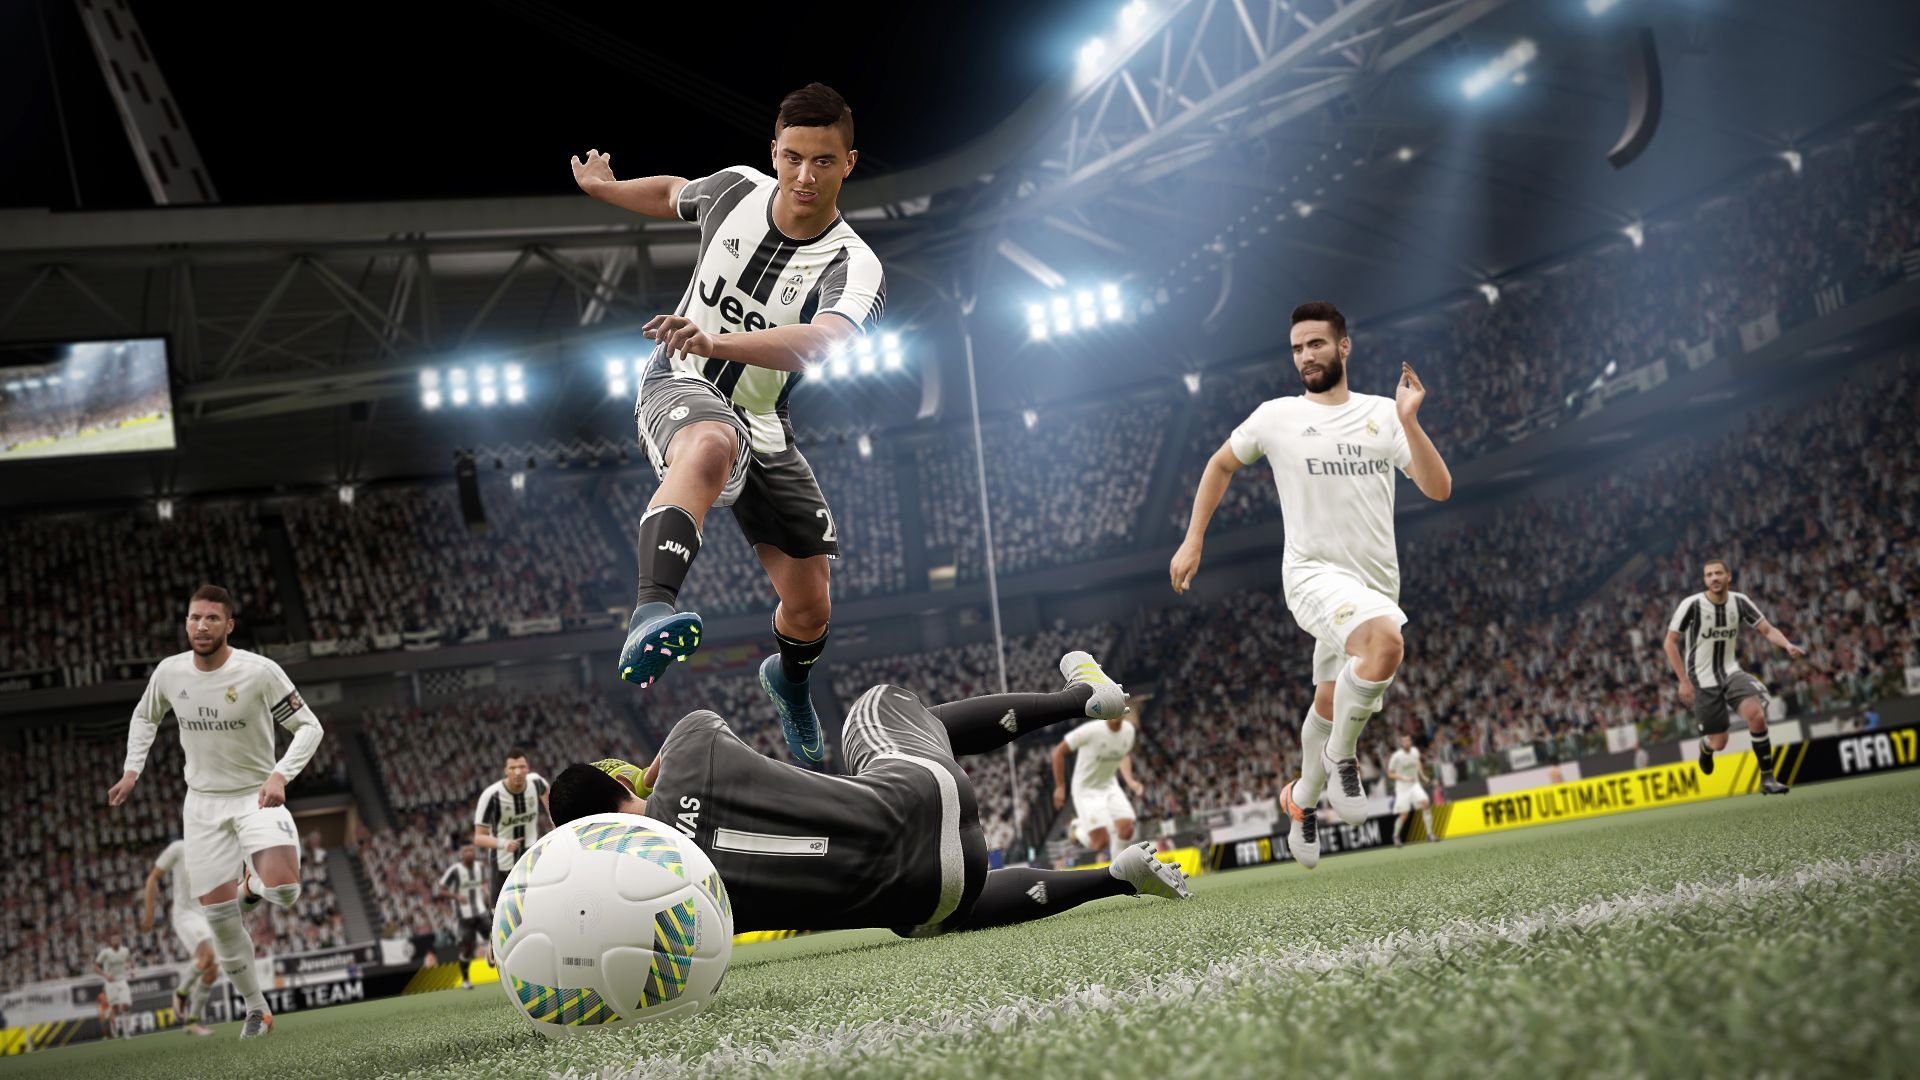 https://data1.origin.com/live/content/dam/originx/web/app/games/fifa/fifa-17/screenshots/fifa-17/JuvVsRM_pdp_screenhi_3840x2160_en_ww.jpg